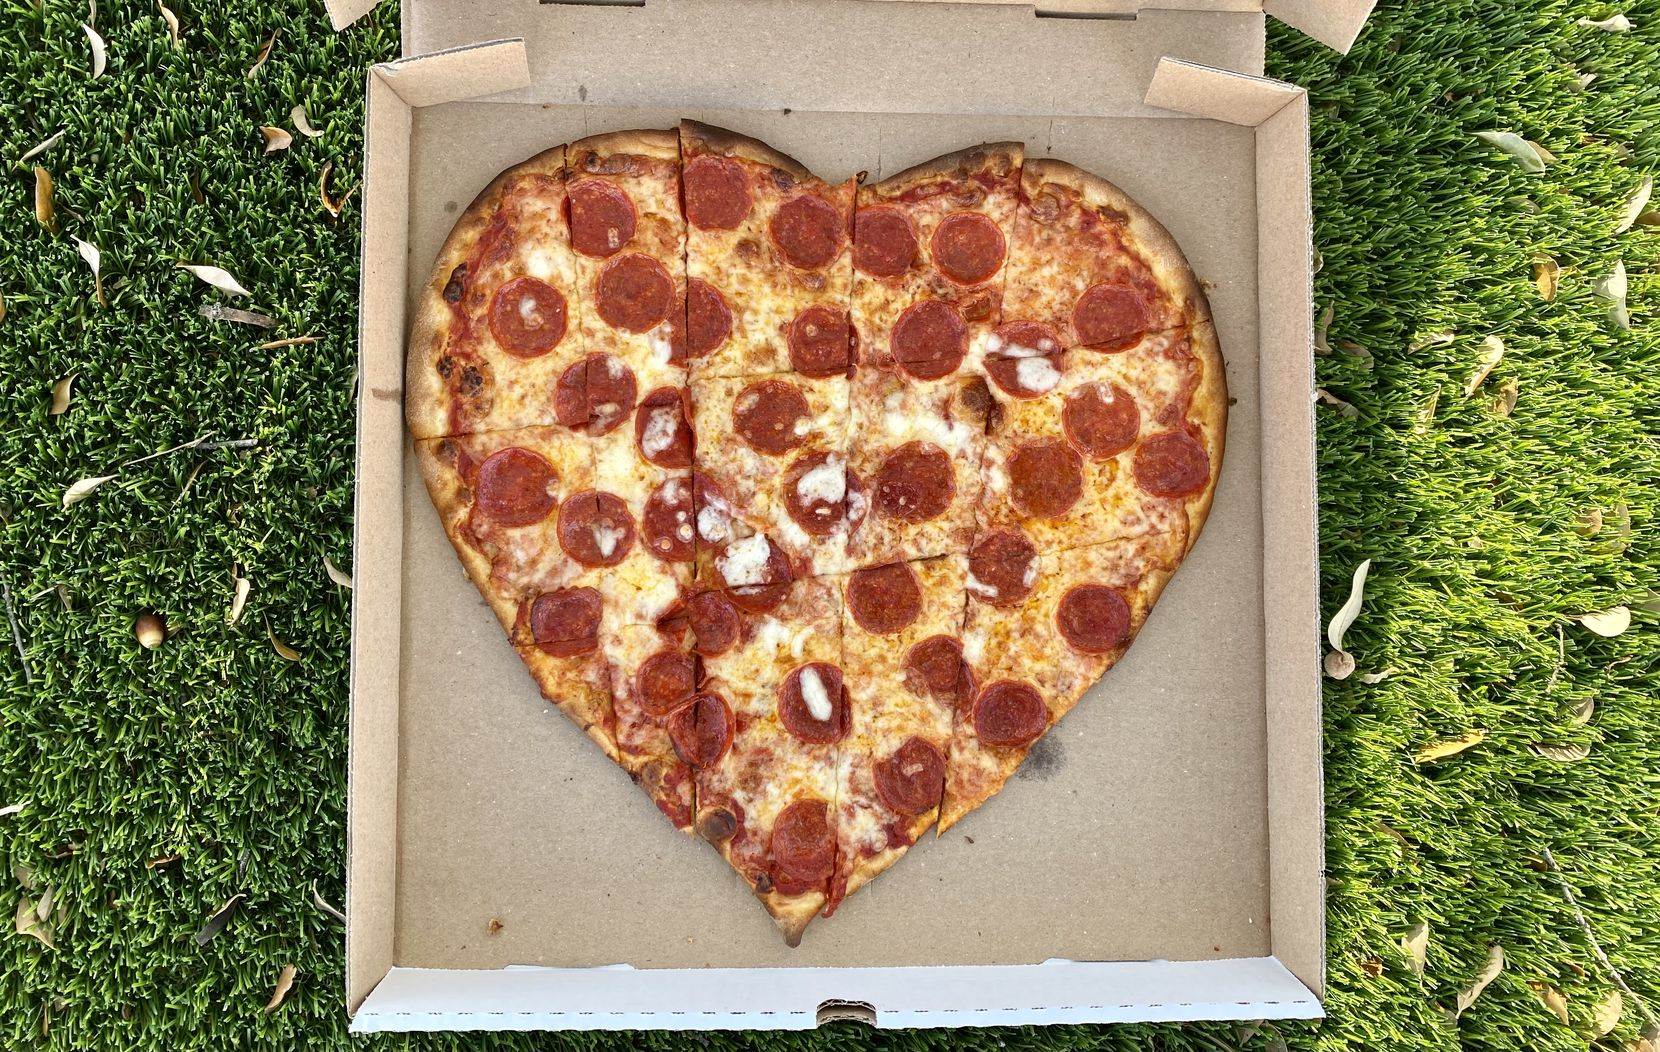 Mimi's Pizzeria serves heart-shaped pizzas for Valentine's Day this year.